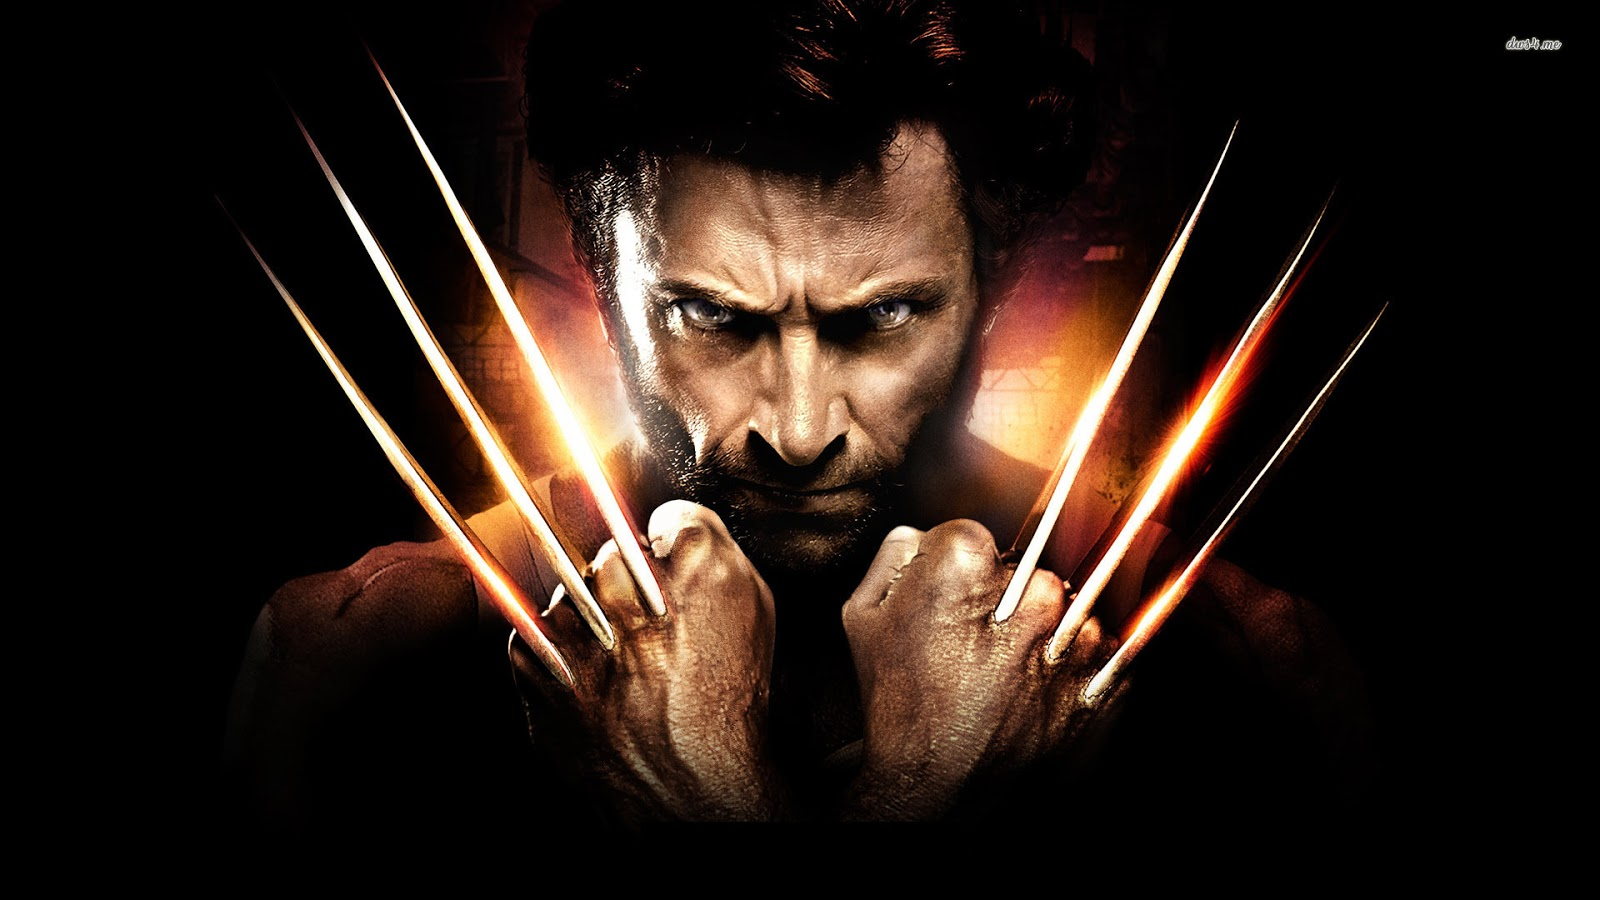 X-Man Wolverine 2 Full High Definition Wallpaper Free Download | HD Wallpapers